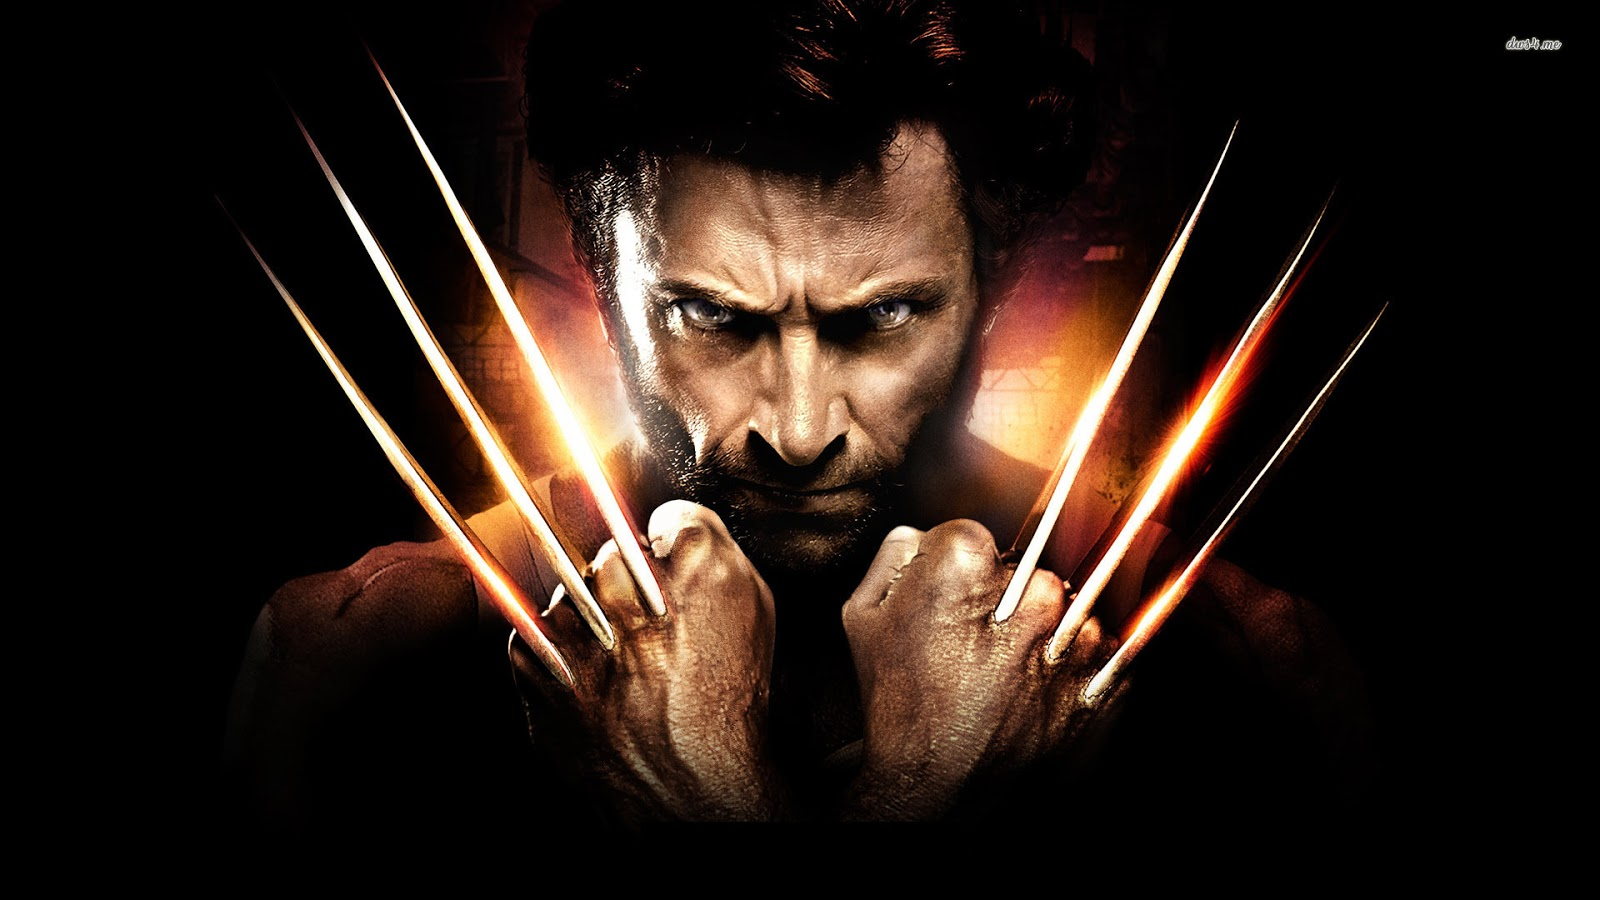 X-Man Wolverine 2 Full High Definition Wallpaper Free Download | HD Wallpapers